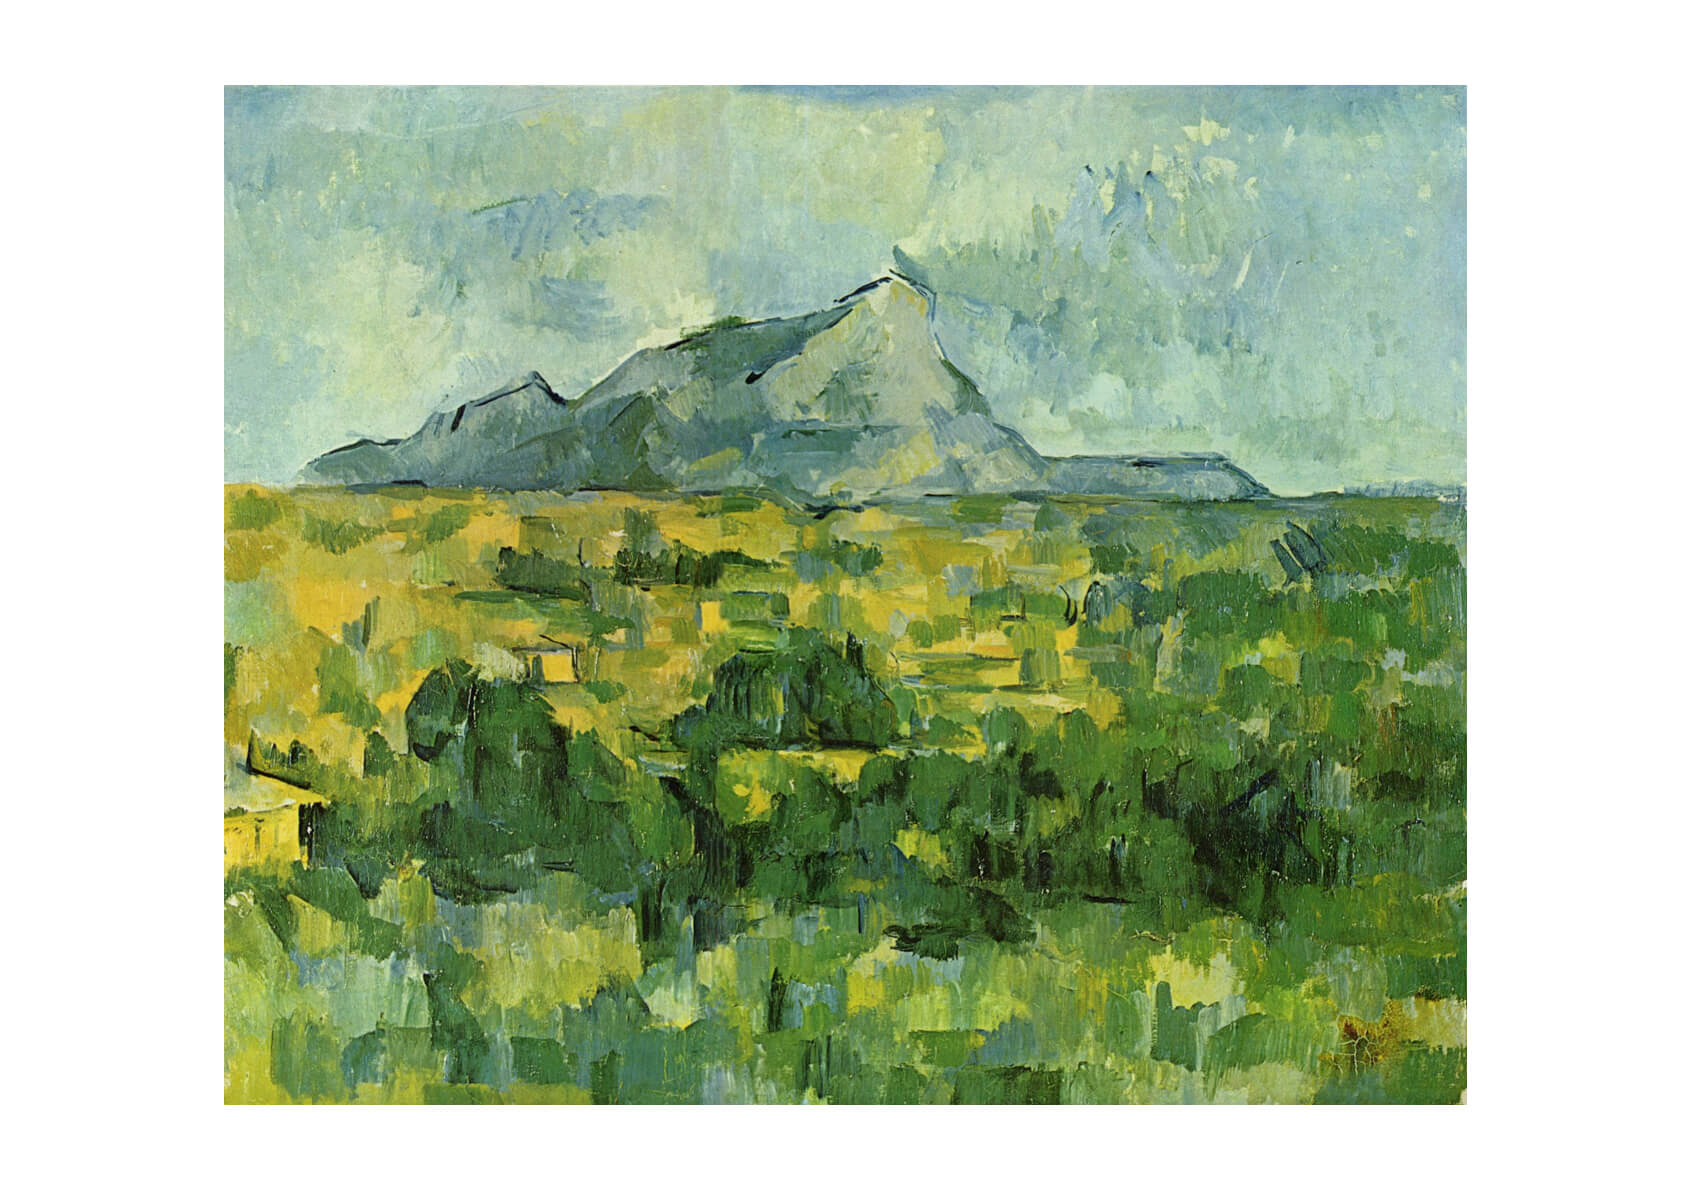 Paul Cezanne - Green and Yellow with Mountain